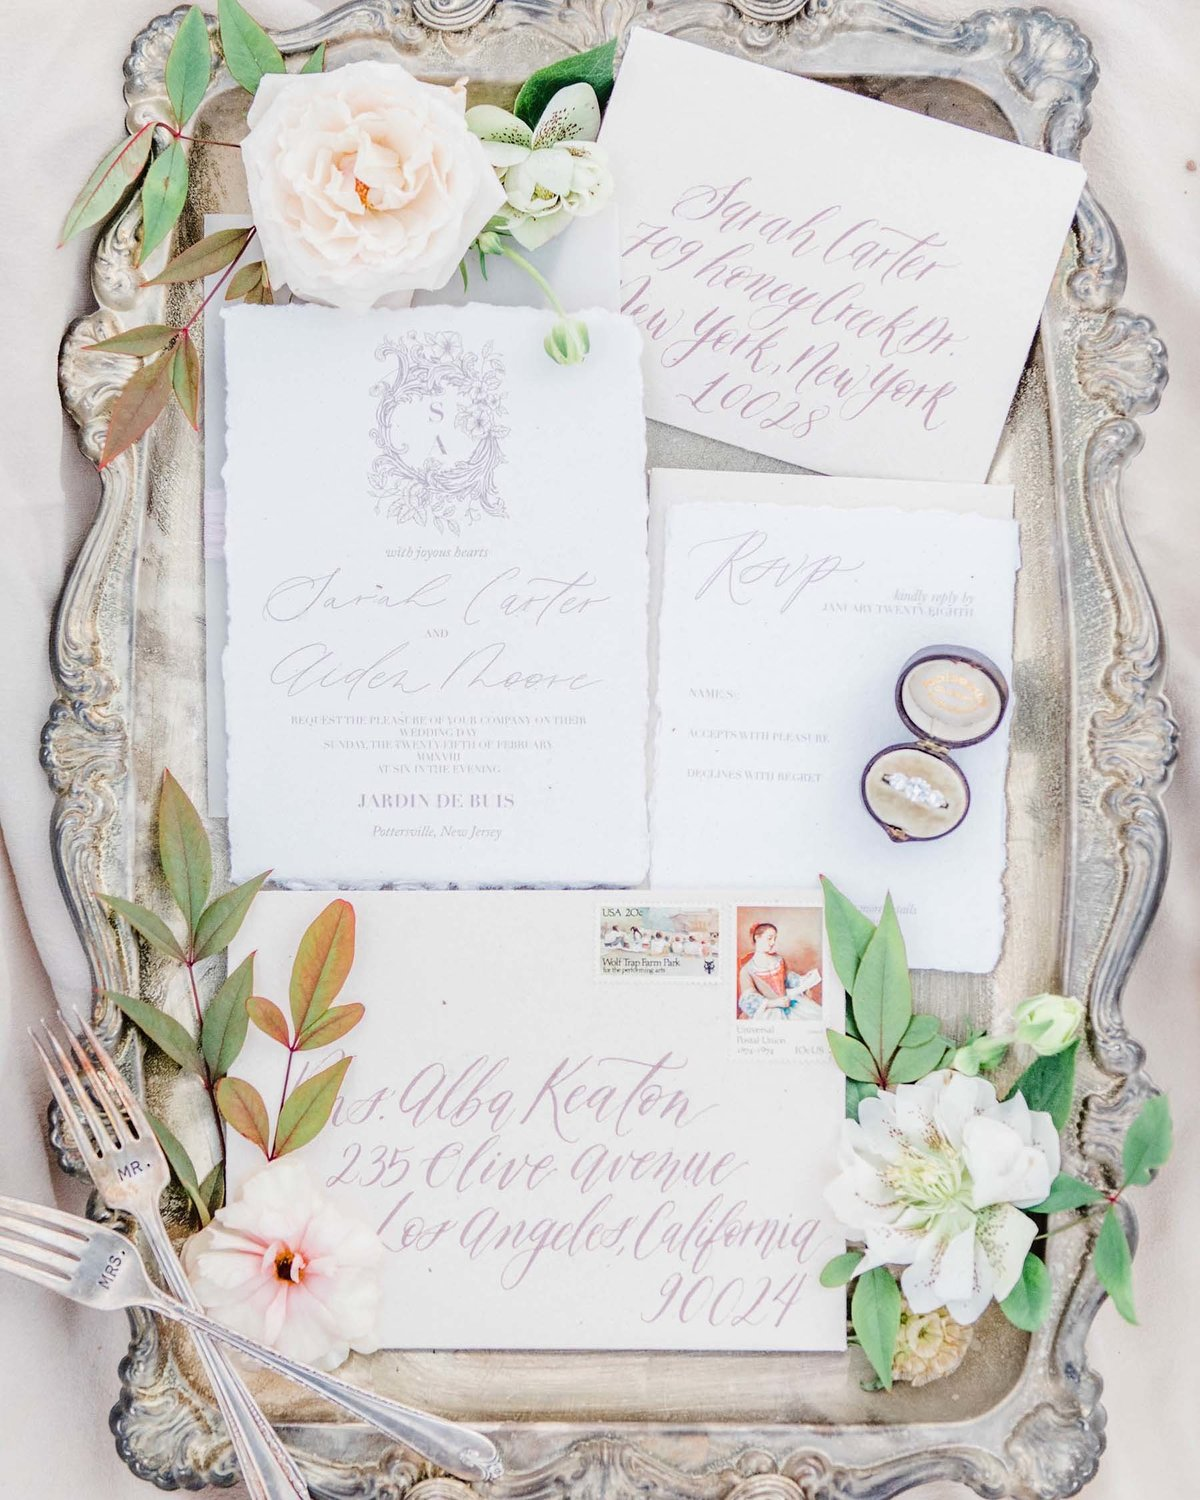 Plume & Fete collections timeless and sophisticated wedding invitation suite